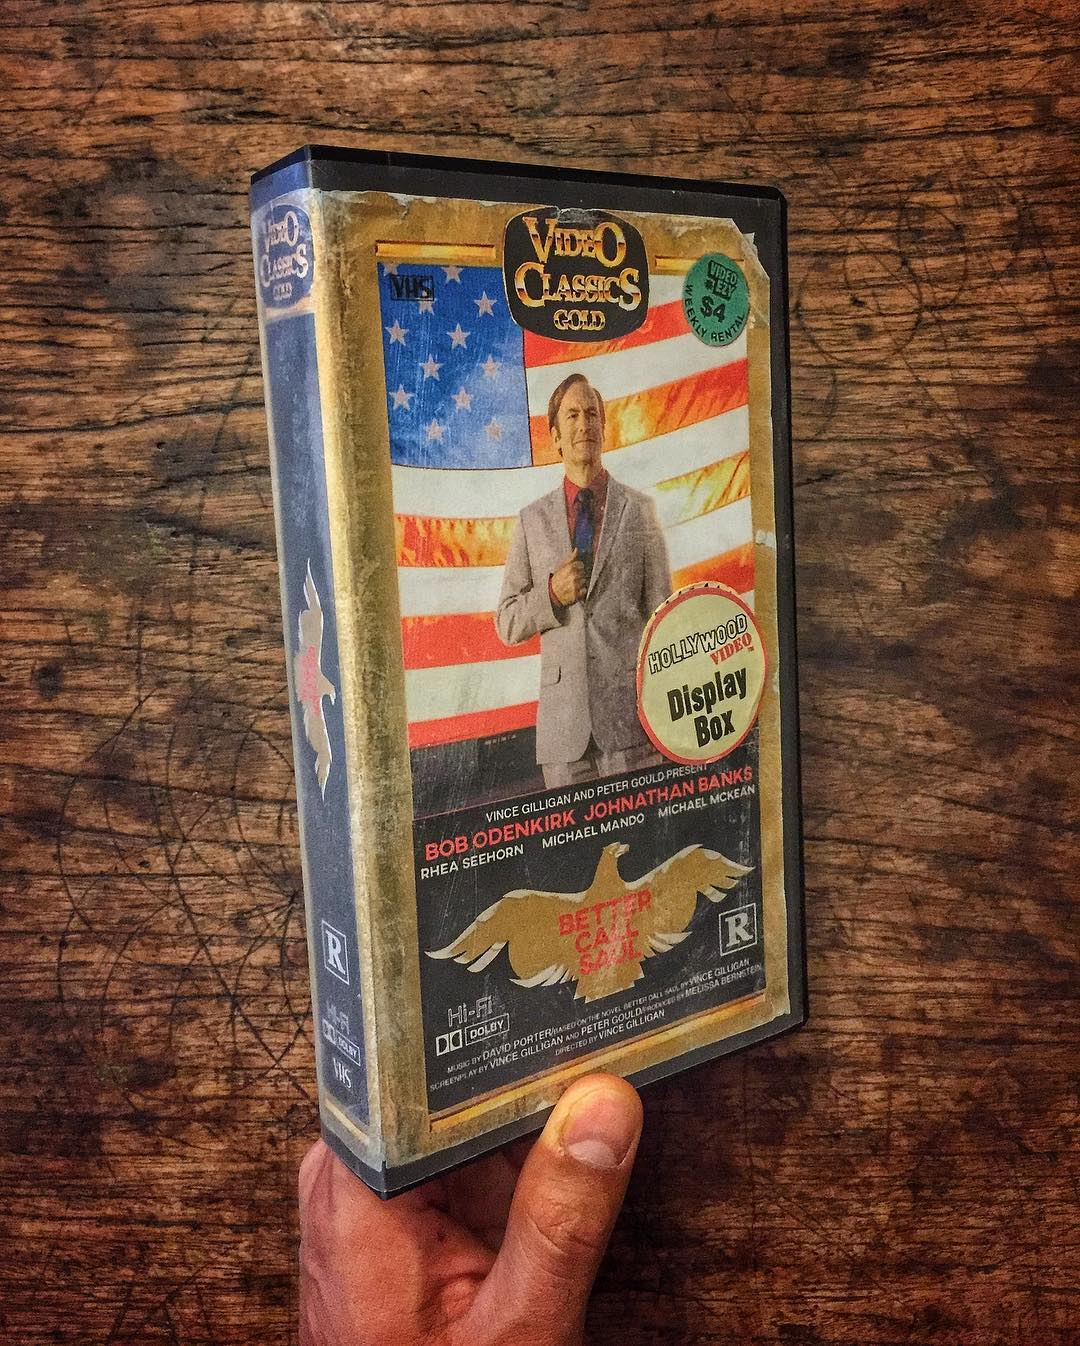 Retro Video Tapes by Steelberg